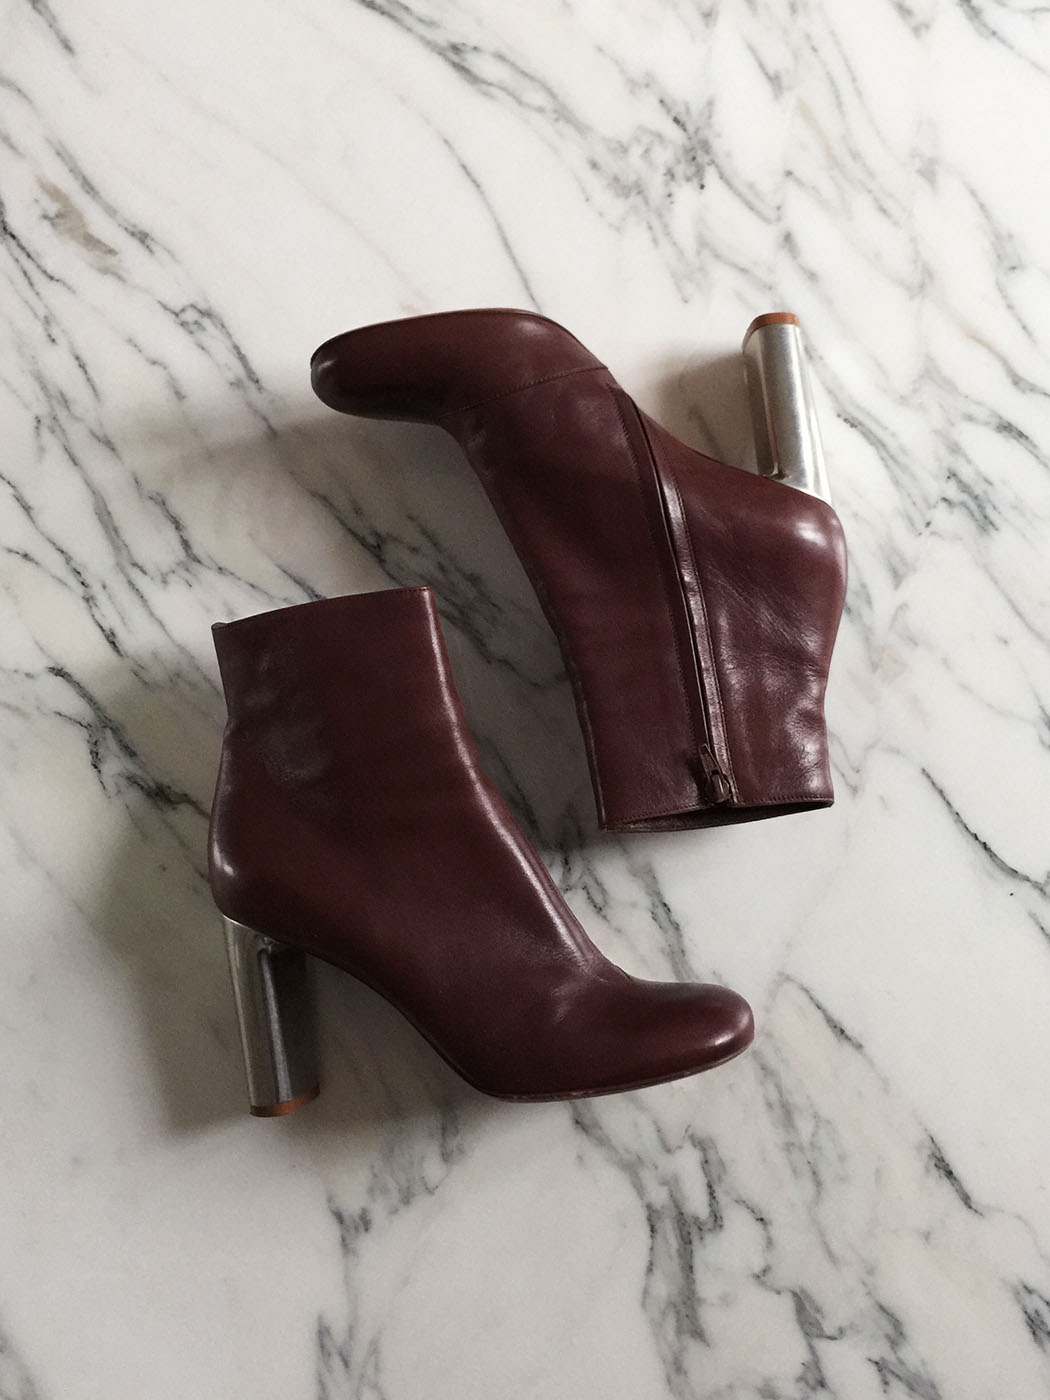 01cb993190 ... BAM BAM burgundy red leather ankle boots silver heel Retail price €730  Size 40.5